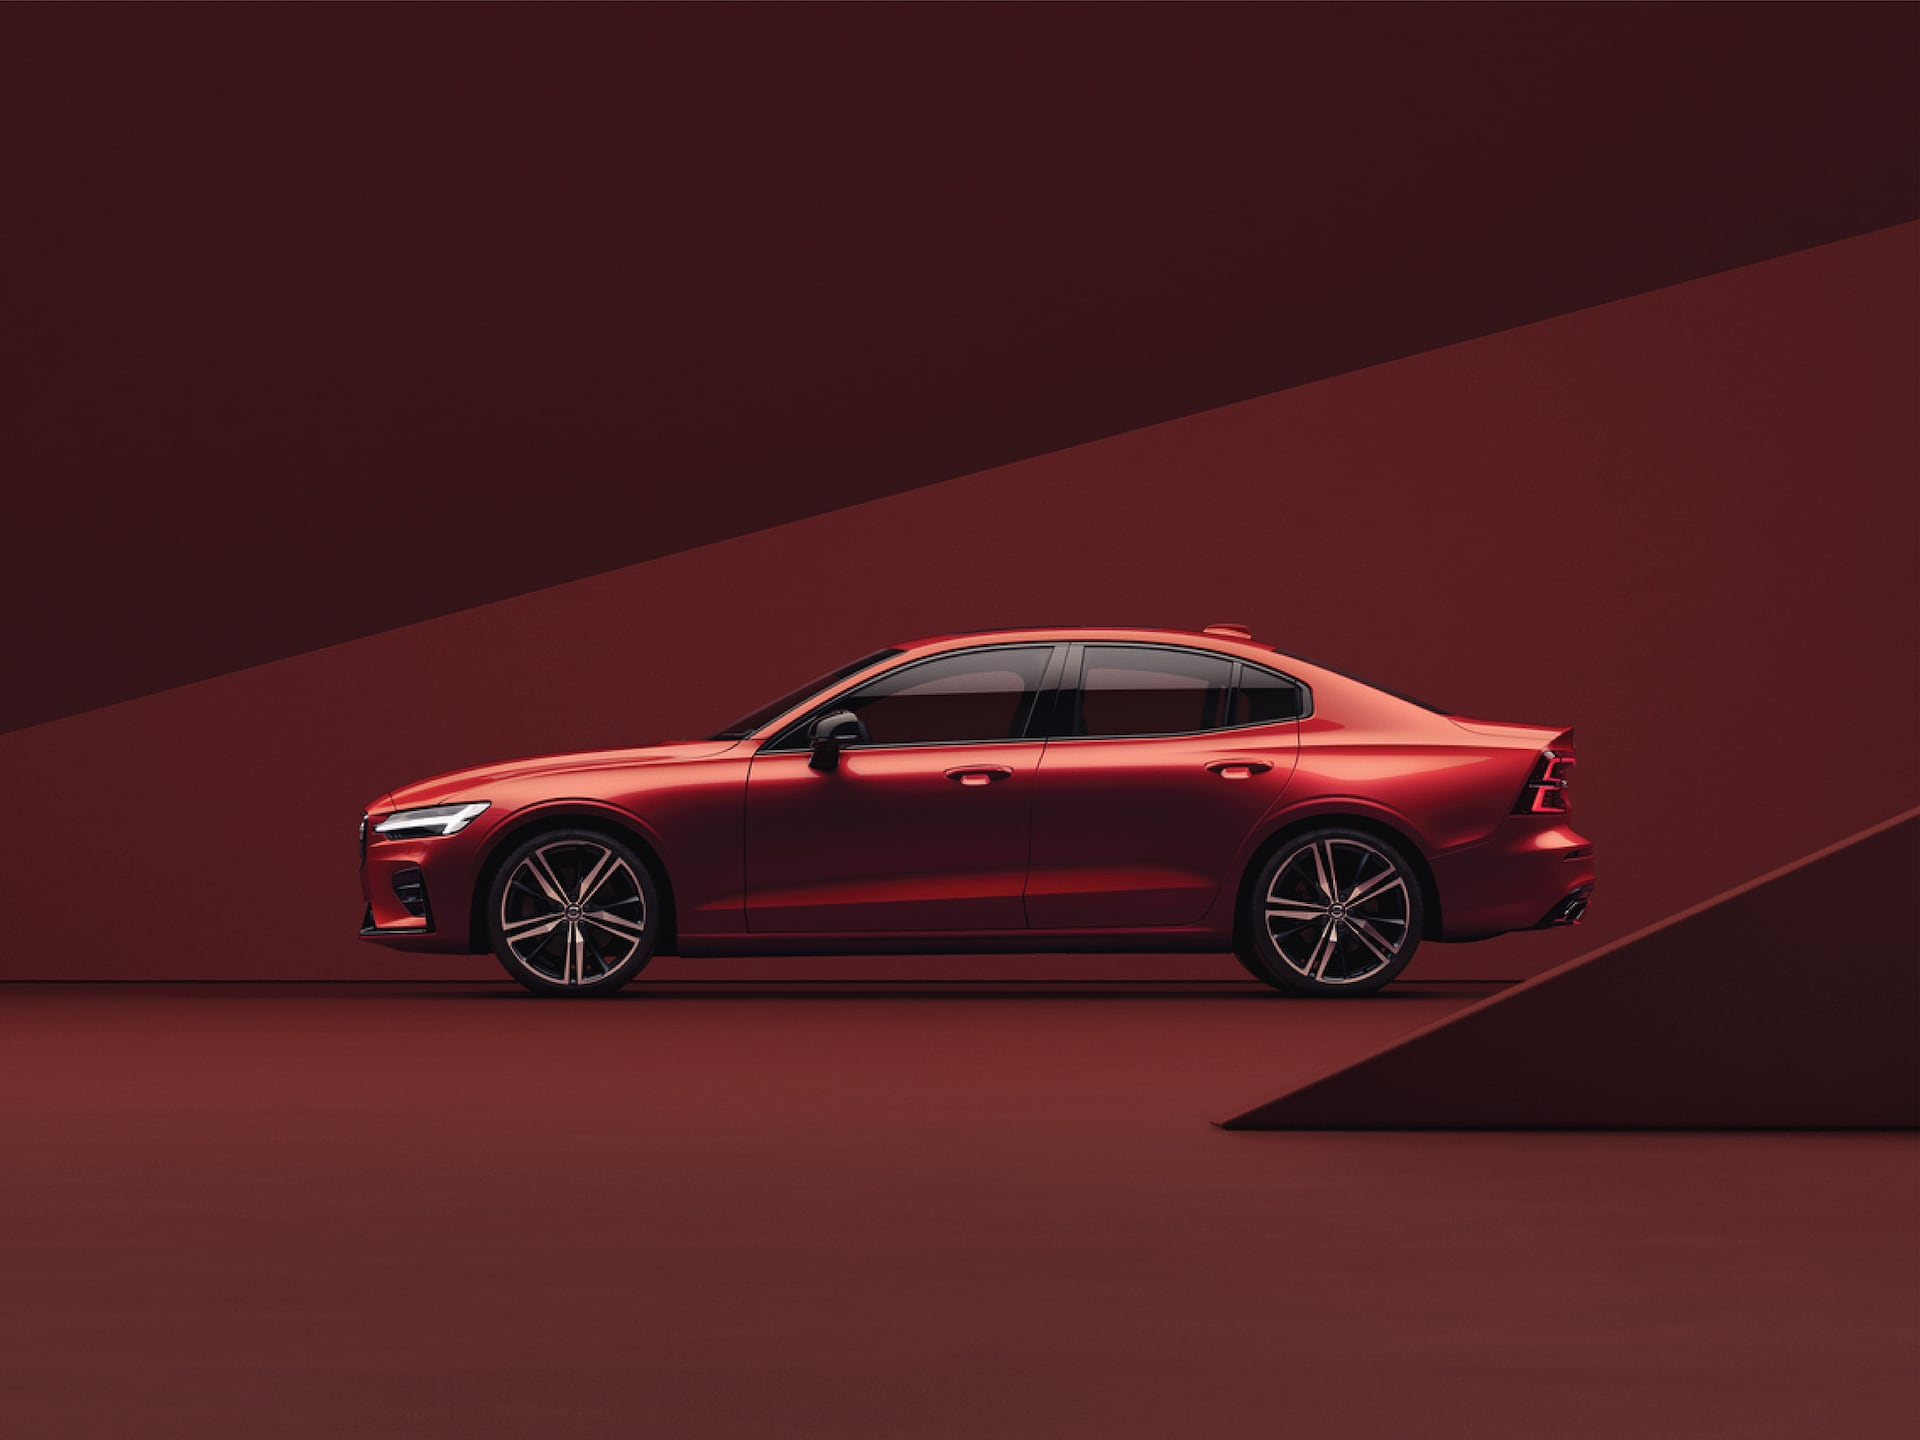 One more car. To help save more lives. The all-new Volvo S60.